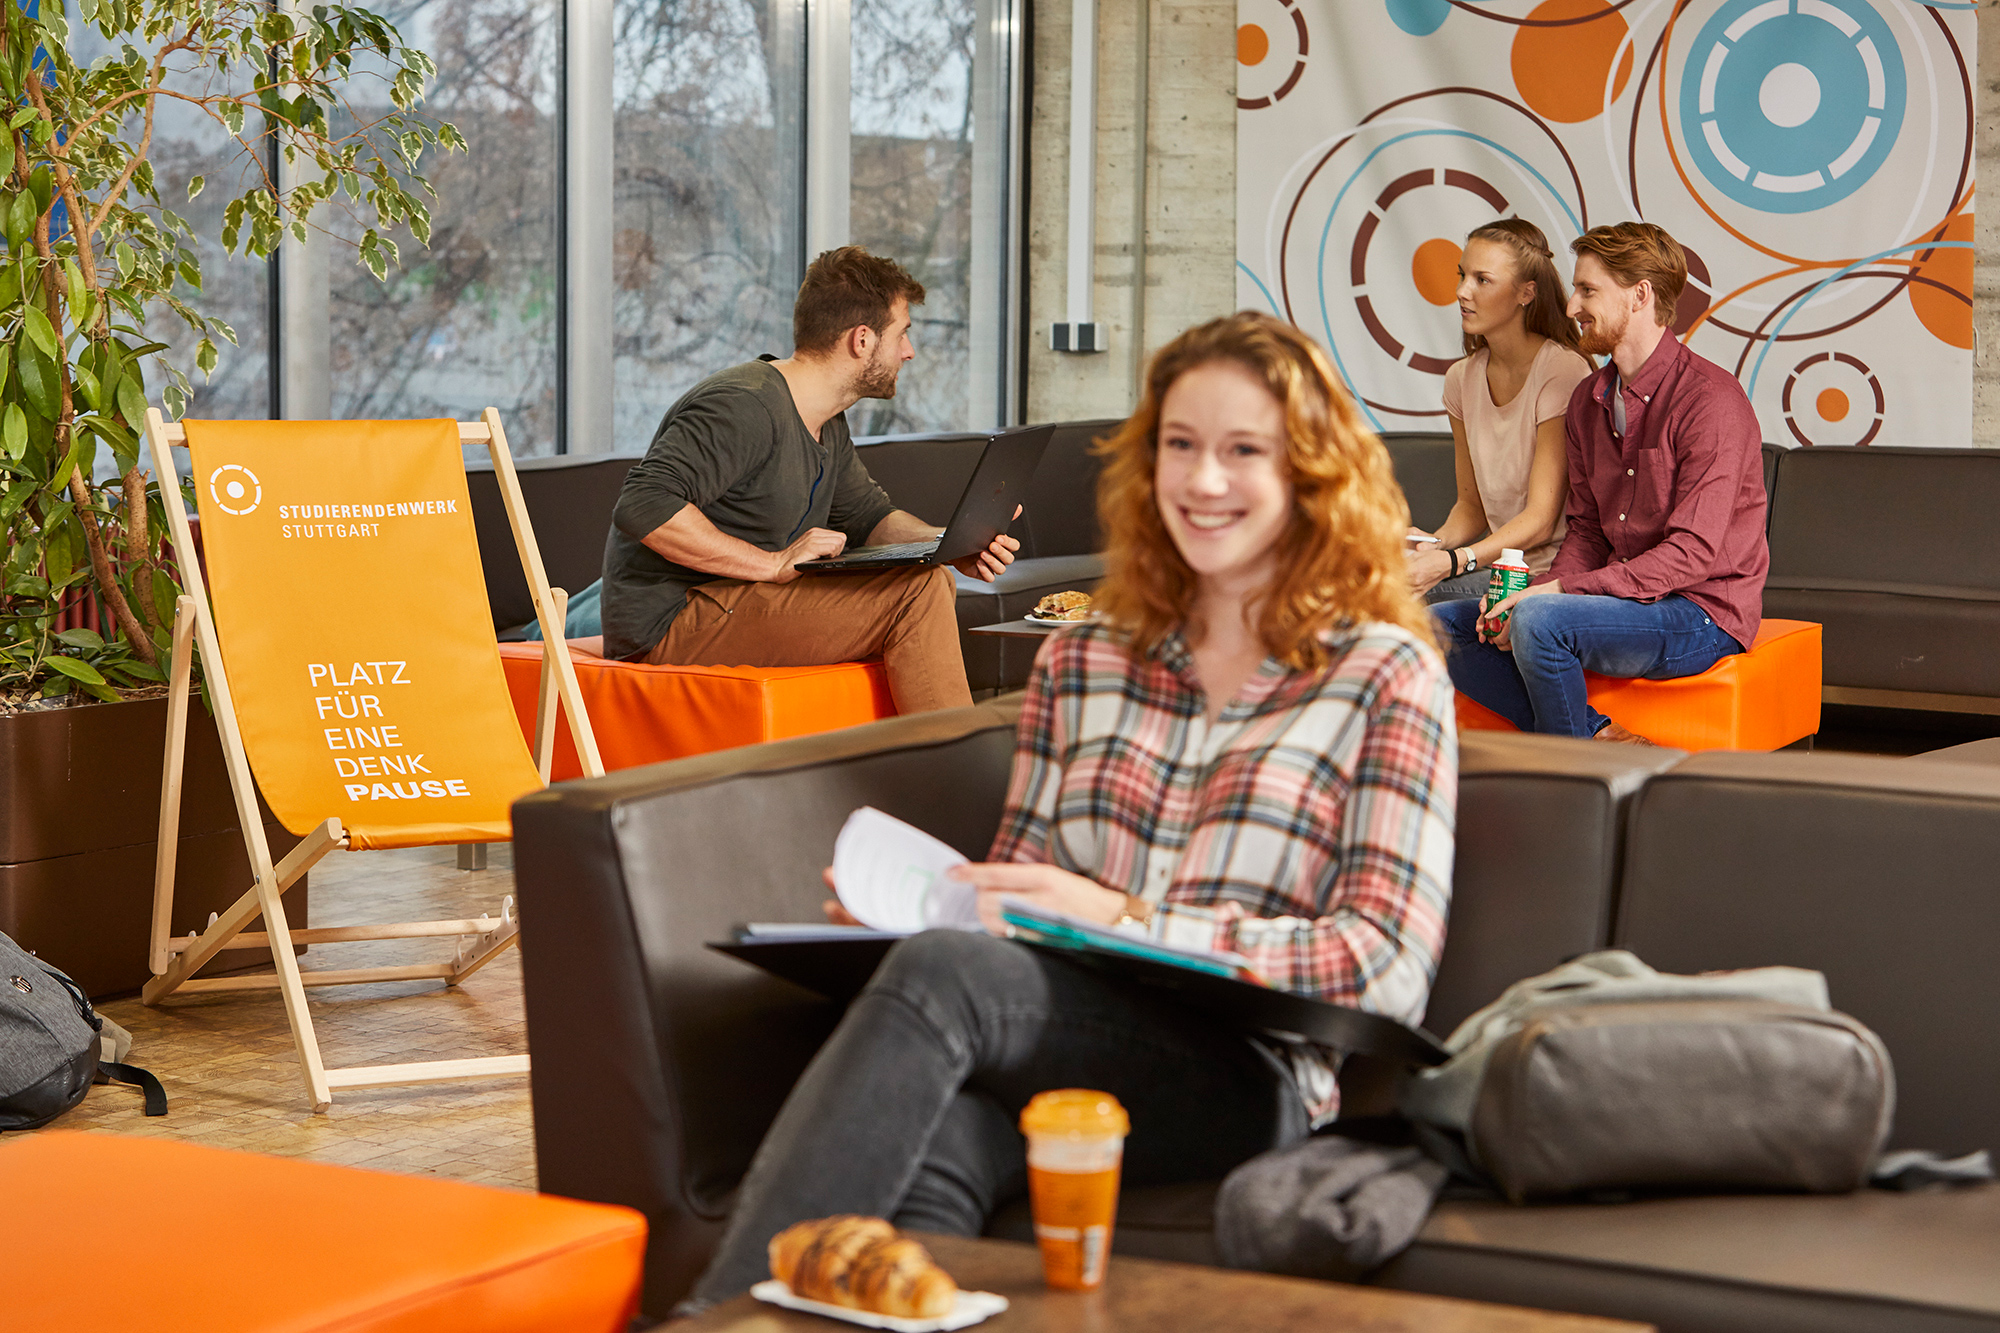 Students learning in the coffee lounge